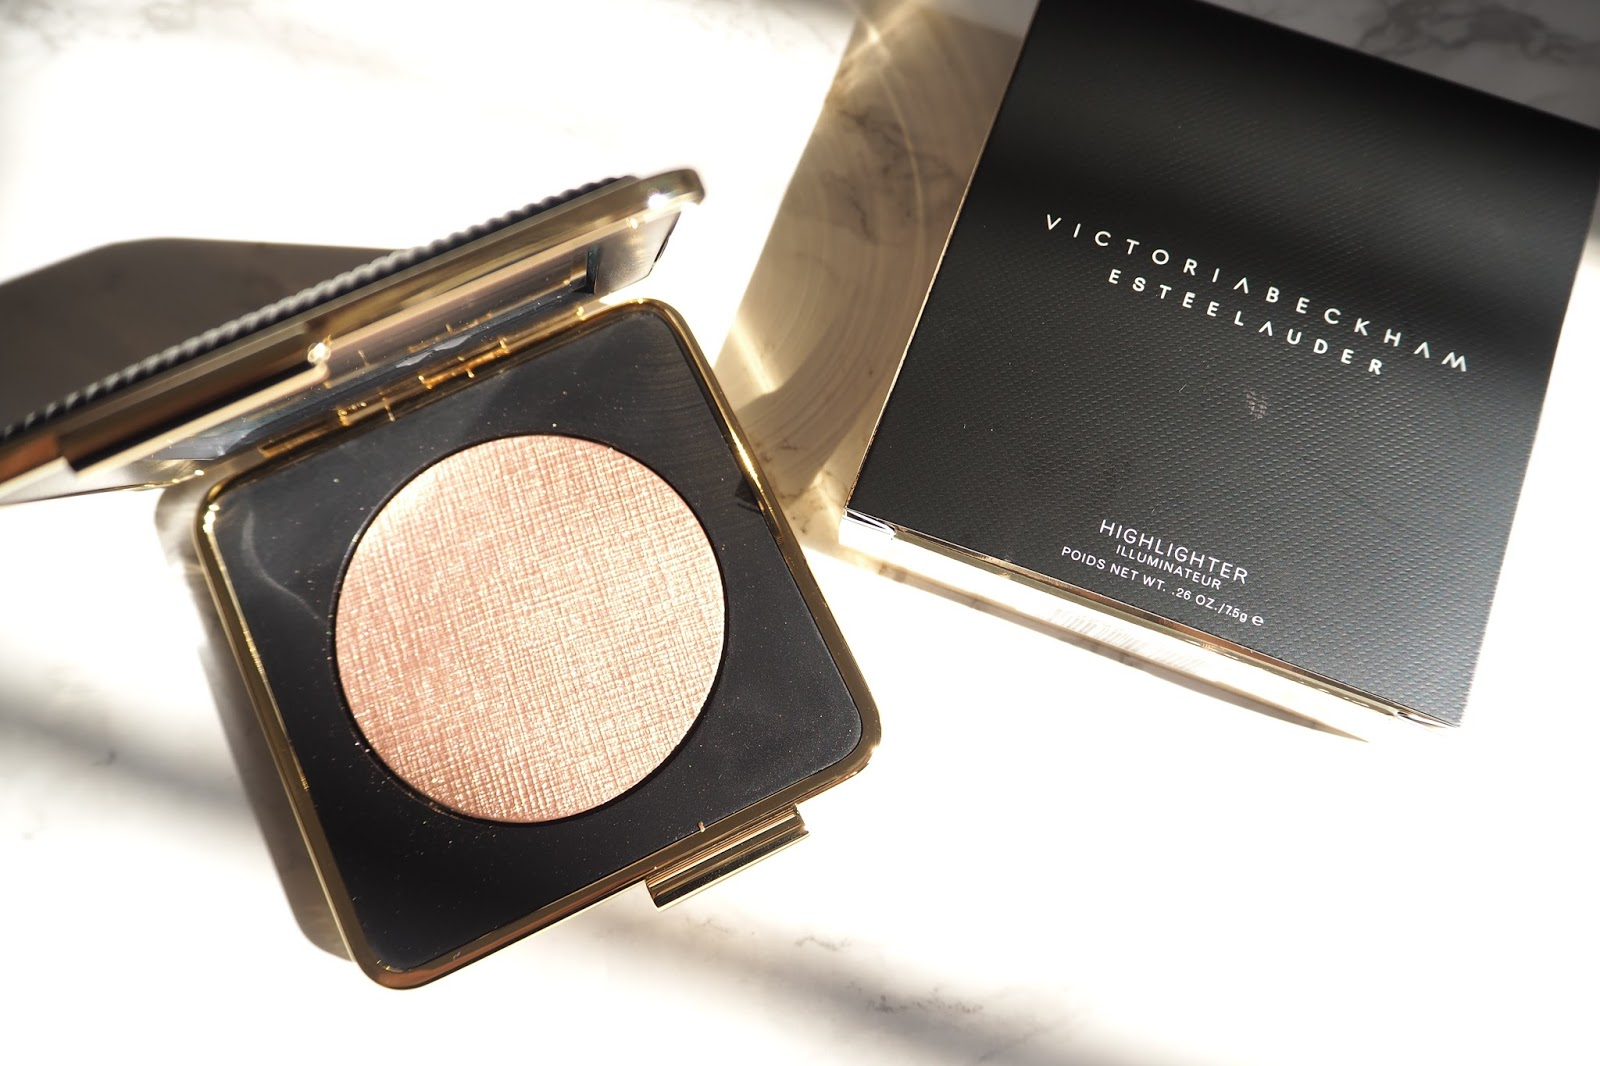 Victoria Beckham X Estée Lauder Highlighter in Modern Mercury